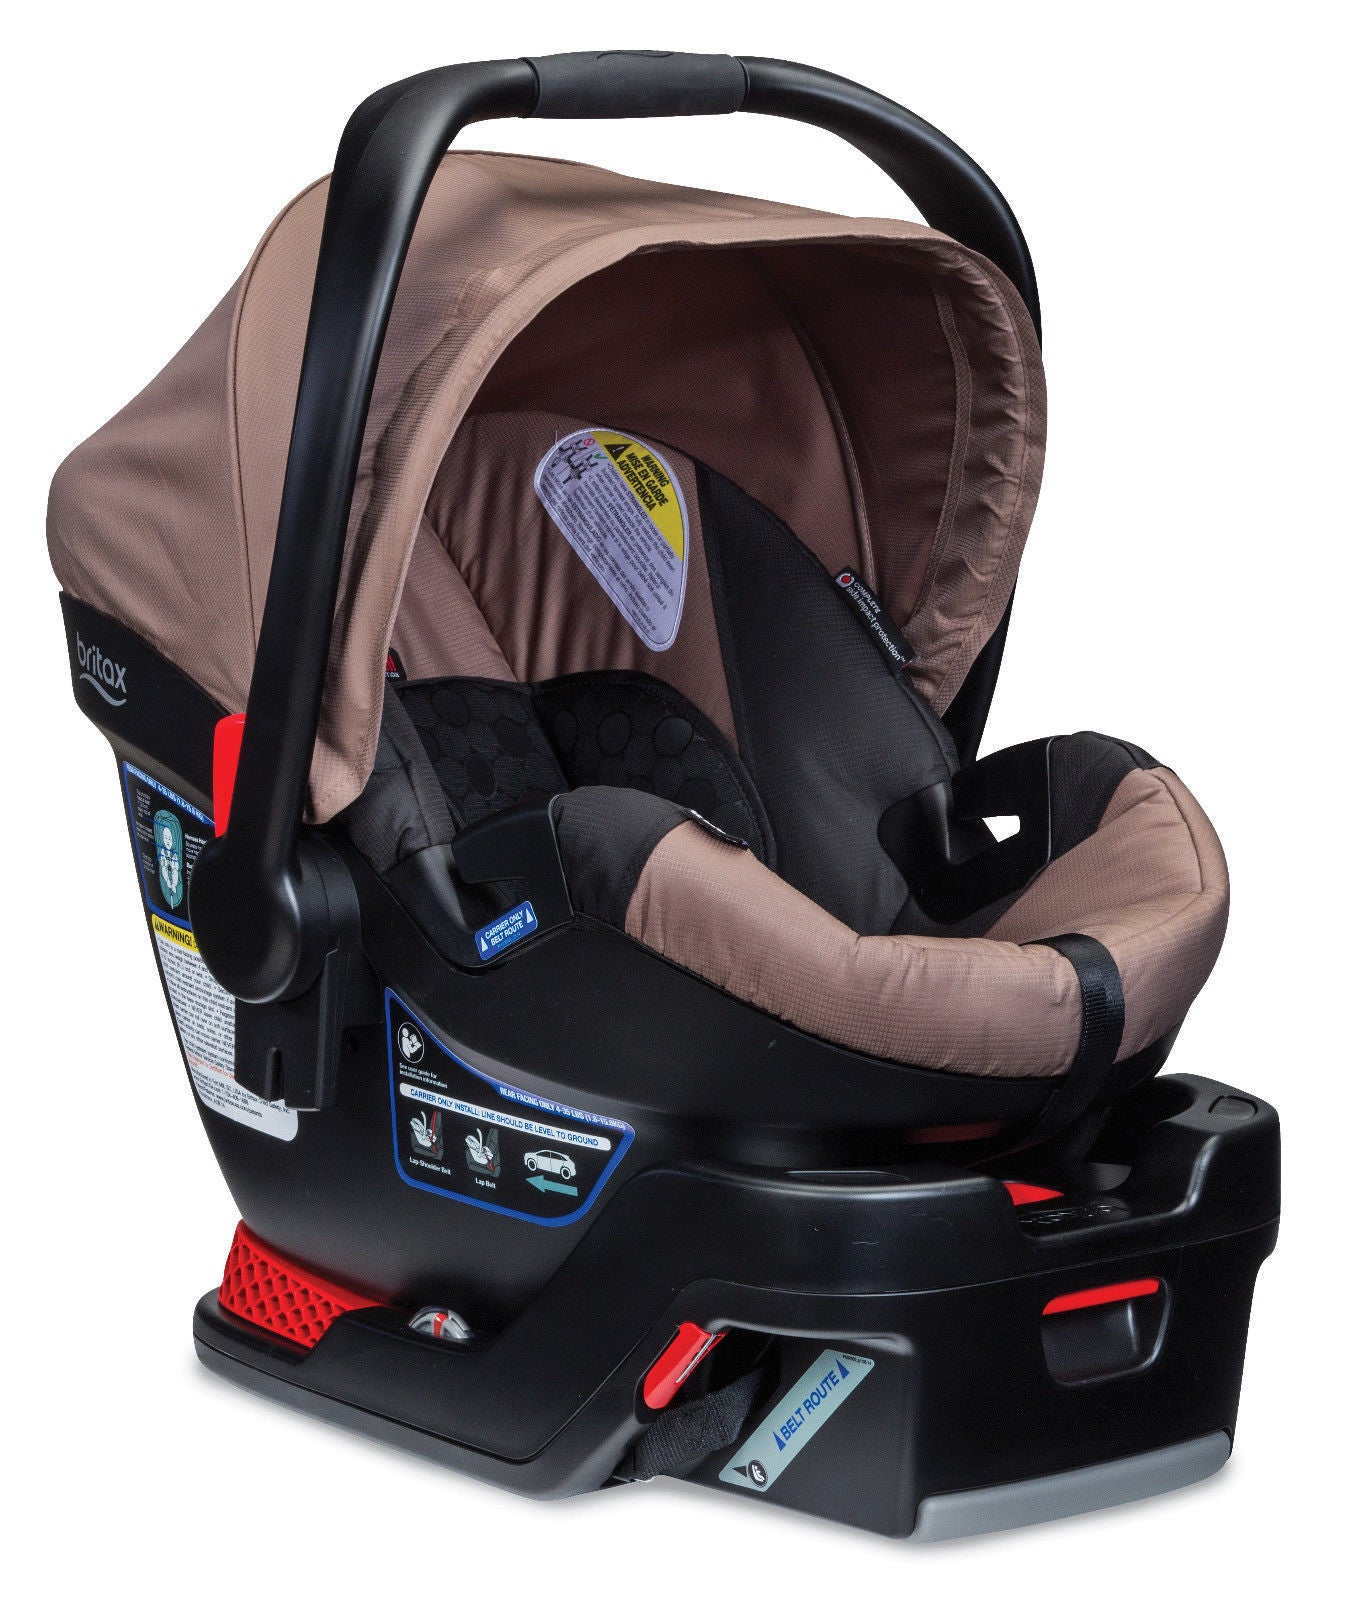 Britax 2015 B-Safe 35 Infant Car Seat, Sandstone